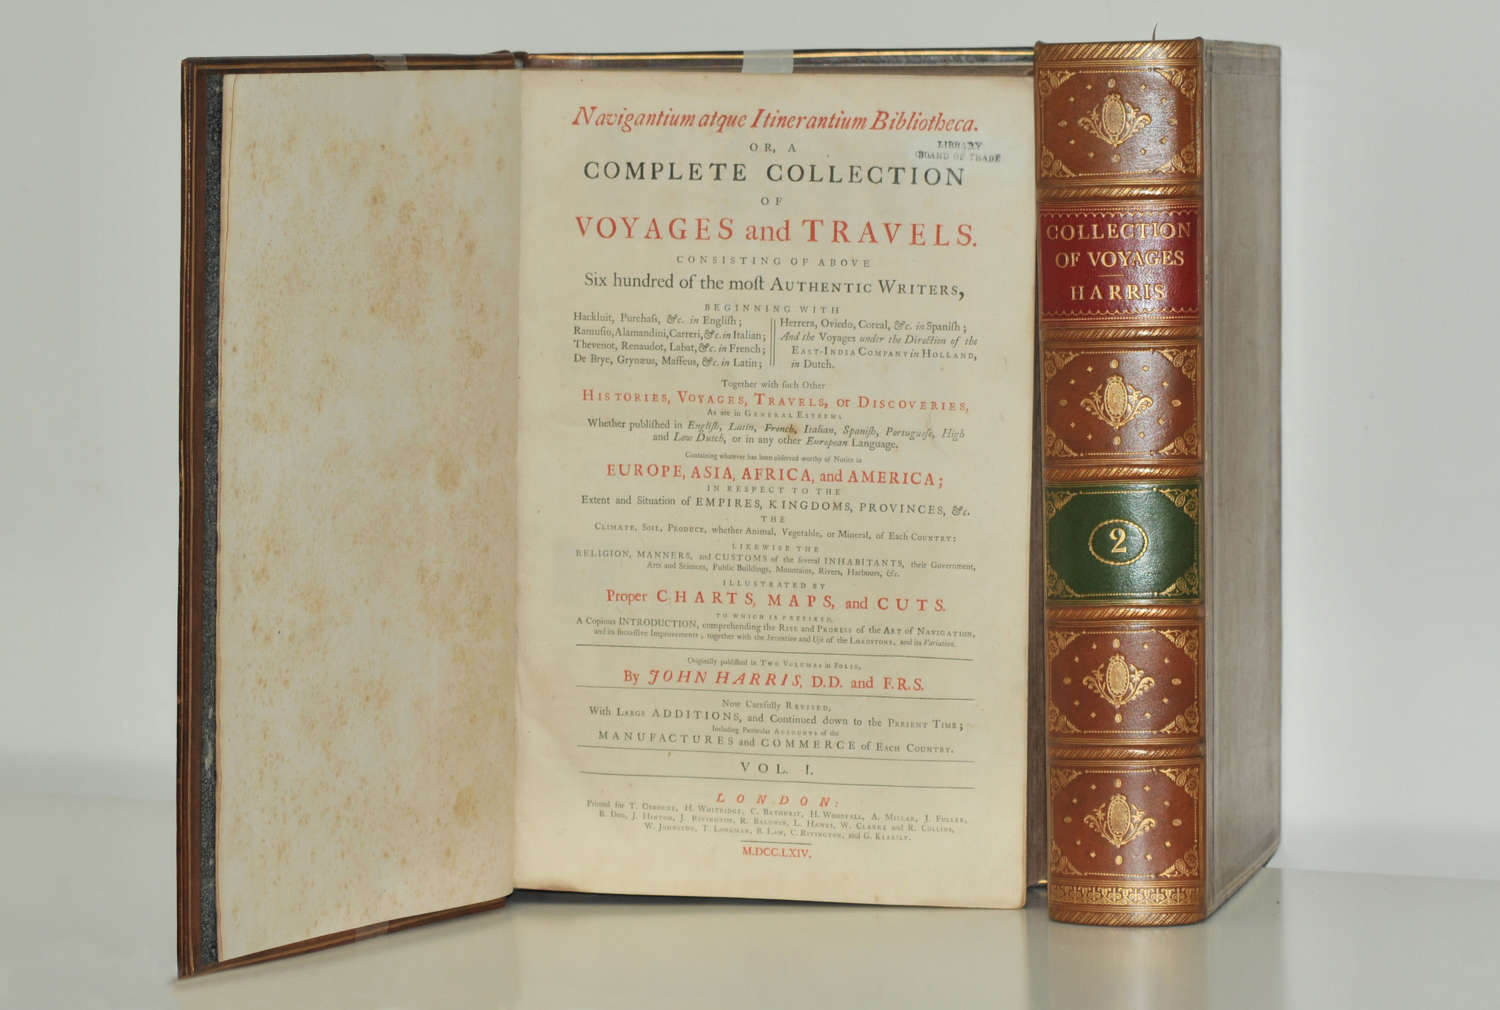 Harris Complete Collection of Voyages and Travels